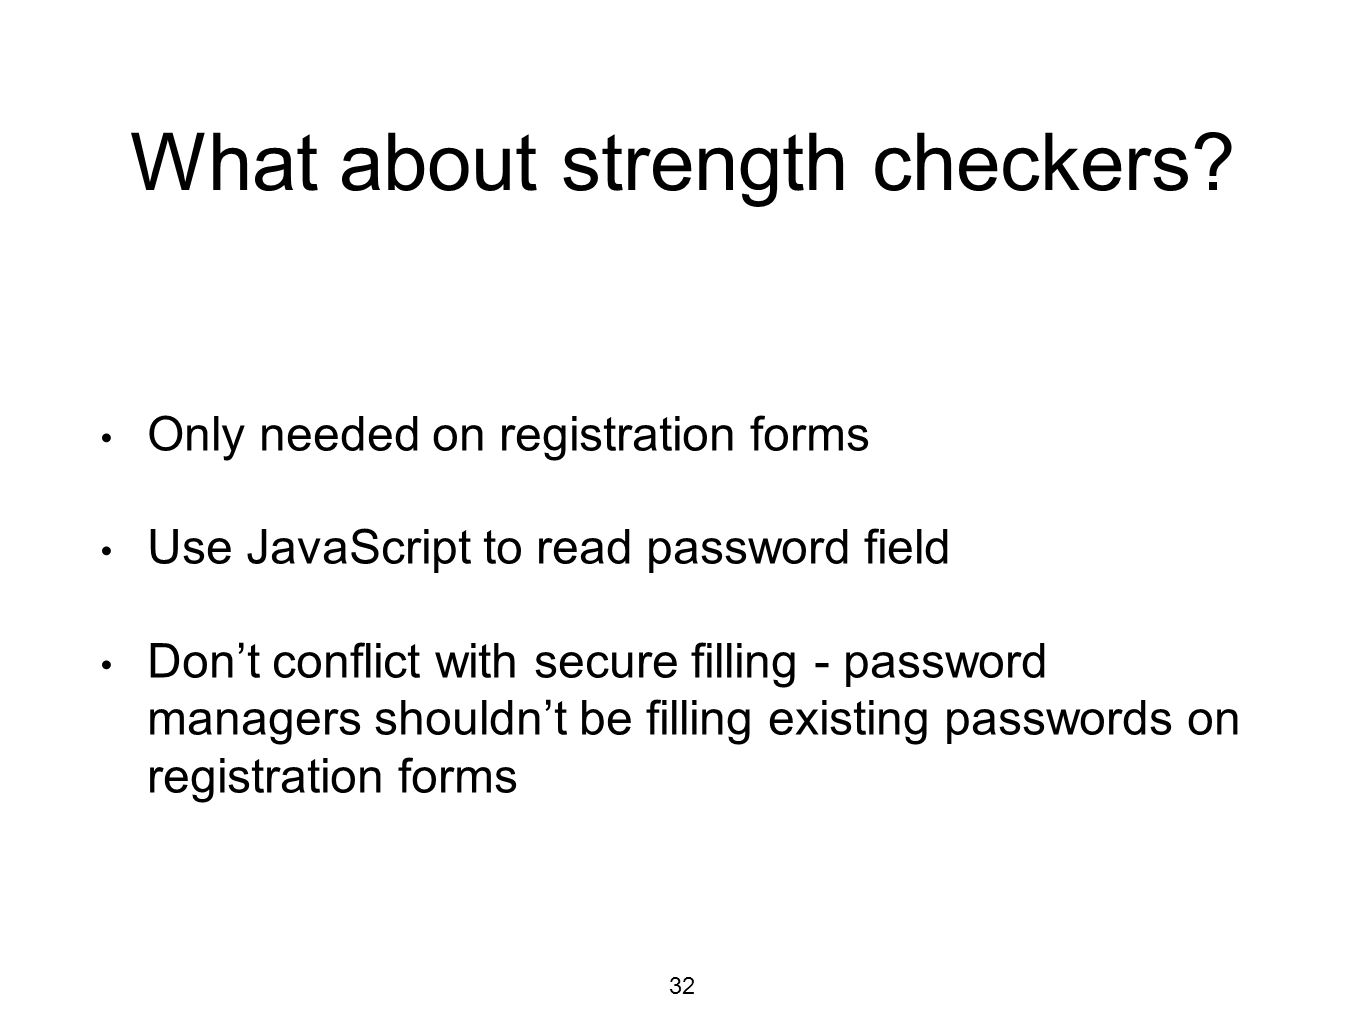 What about strength checkers? Only needed on registration forms Use JavaScript to read password field Don't conflict with secure filling - password ma